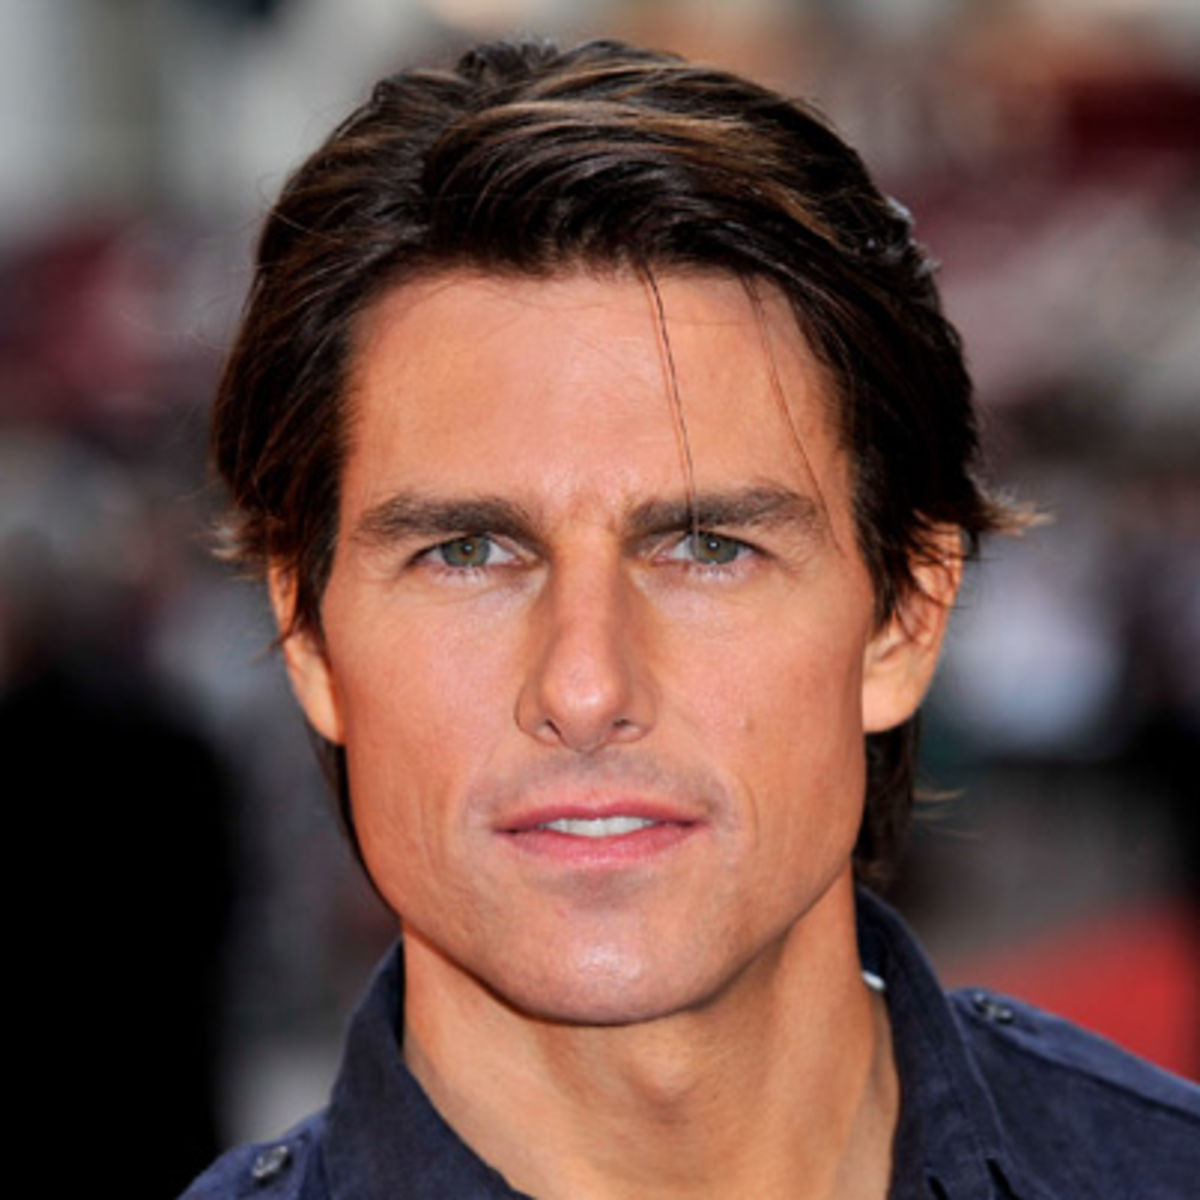 Tom Cruise Face